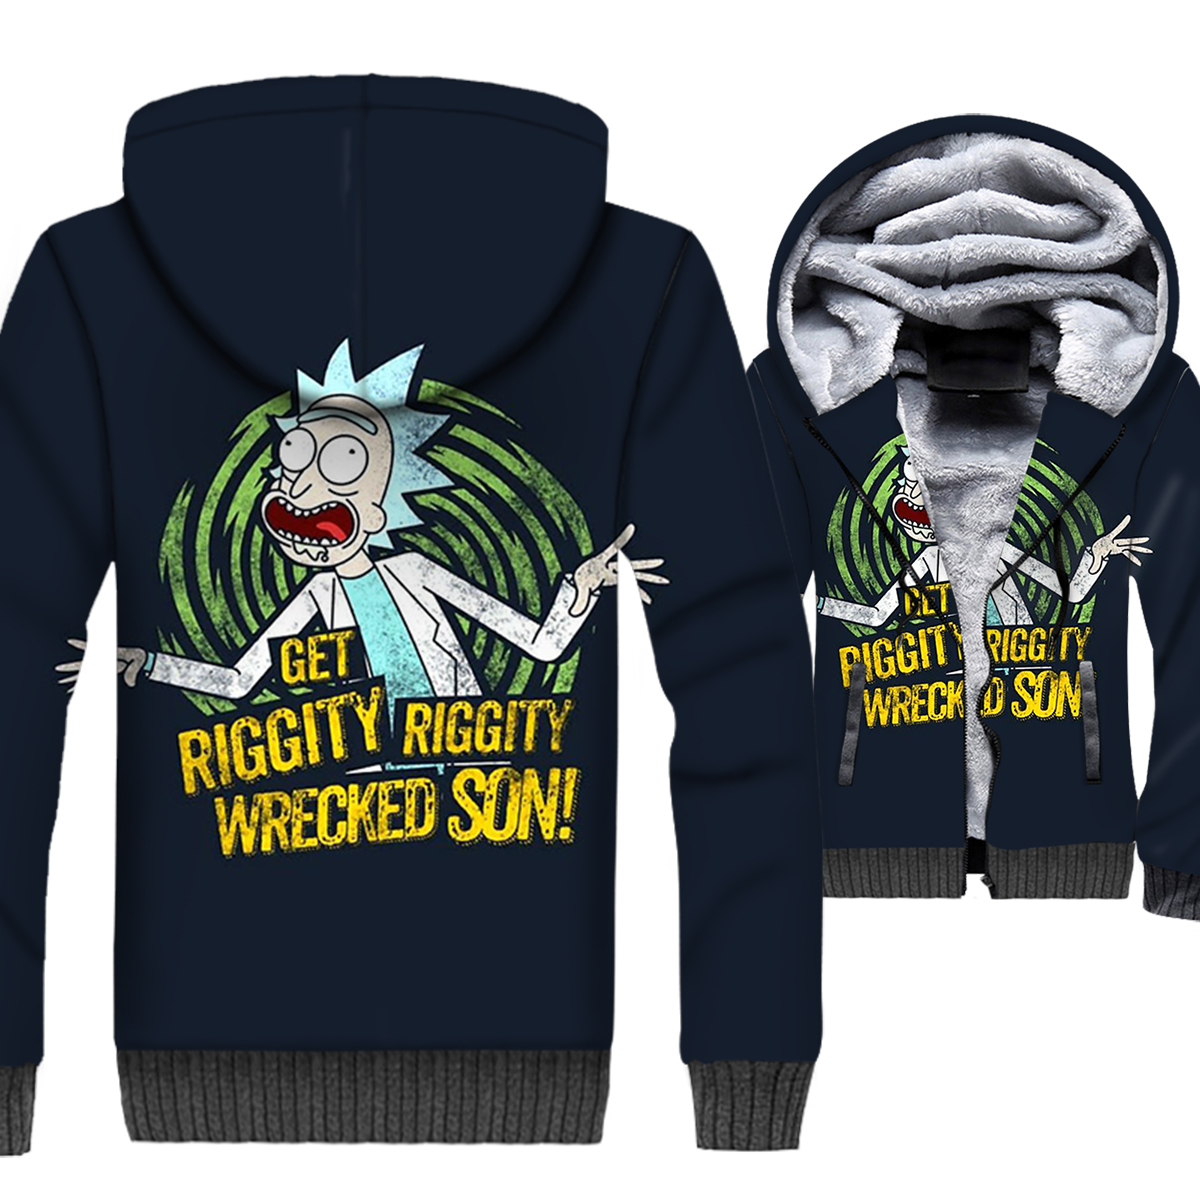 Rick and Morty Jacket 3D Print Hoodie Men Get Riggity Wrecked Son Sweatshirt Winter Thick Fleece Coat Funny Cartoon Streetwear in Jackets from Men 39 s Clothing